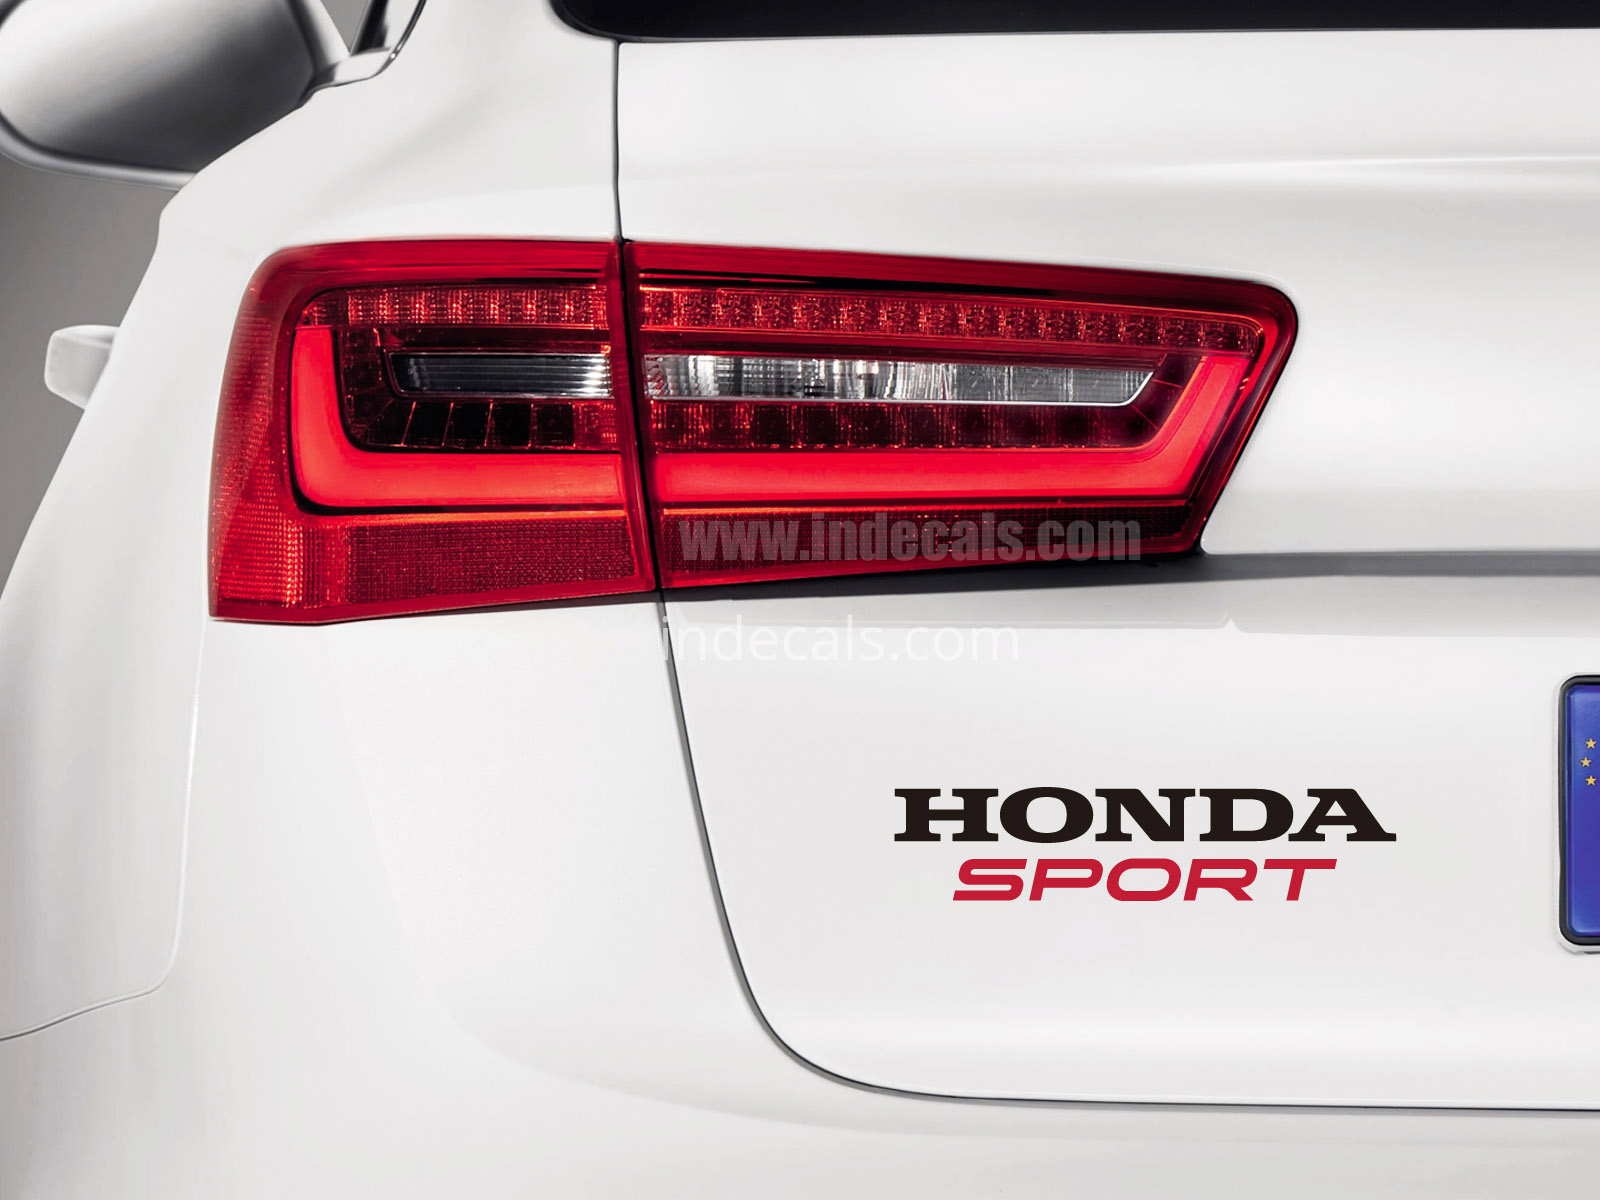 1 x Honda Sports Sticker for Trunk - Black & Red